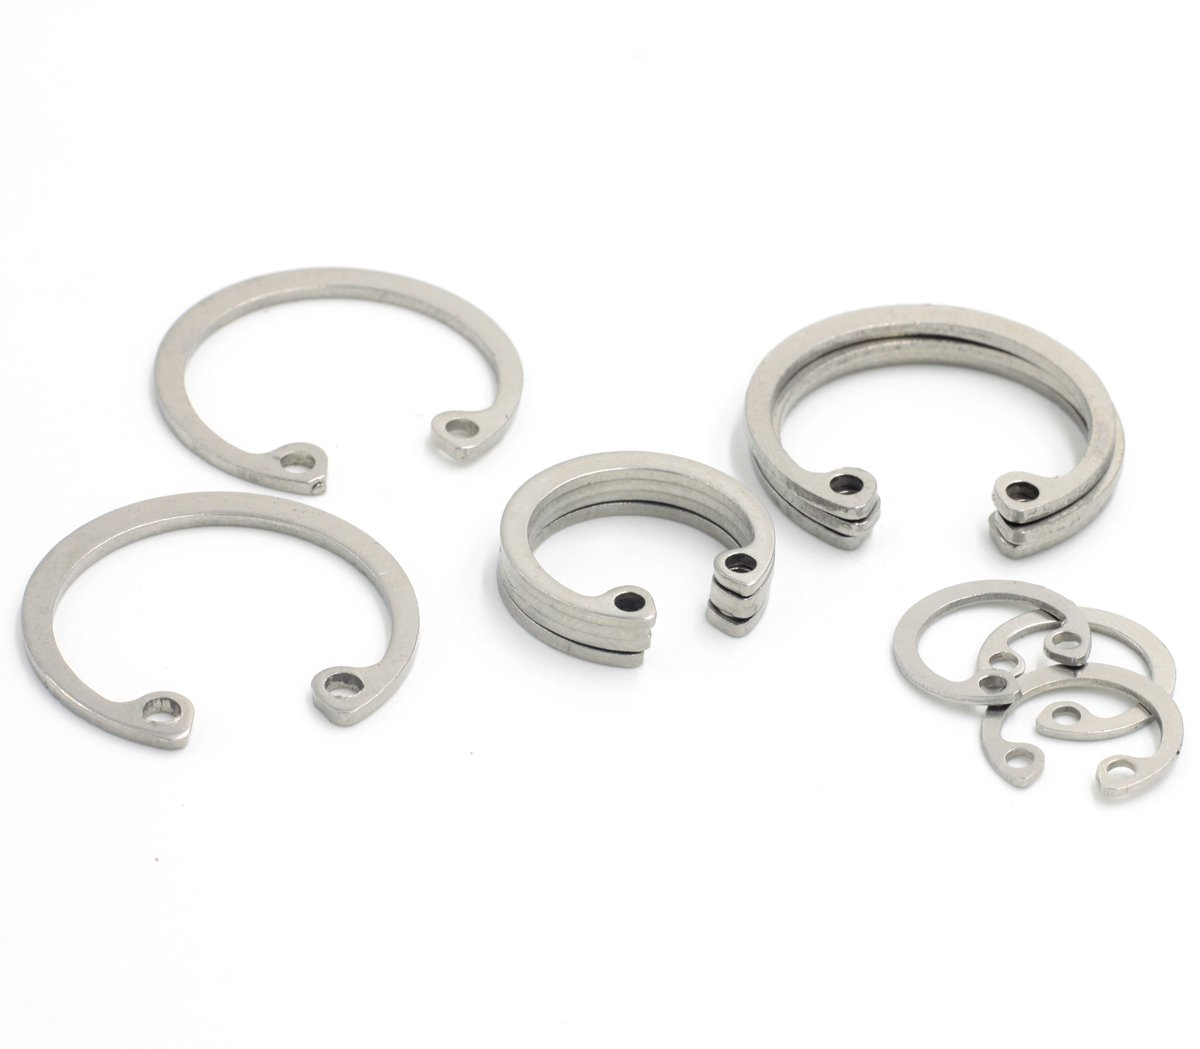 Retaining Rings for Bores,Internal Retaining Rings Circlip Assortment Kit,C-Clip,Stainless Steel,270 Piece